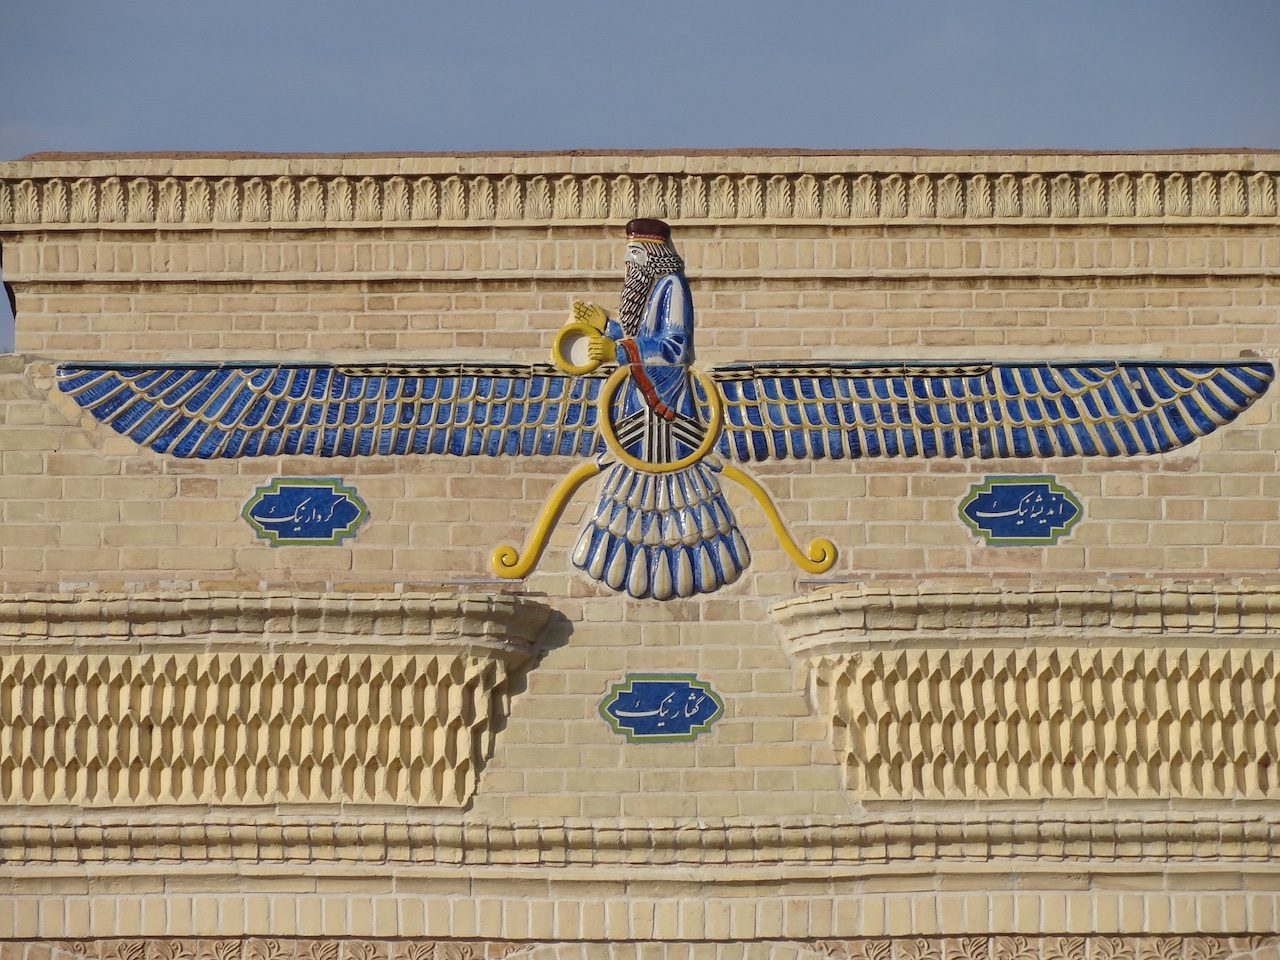 Faravahar at the Atashkadeh